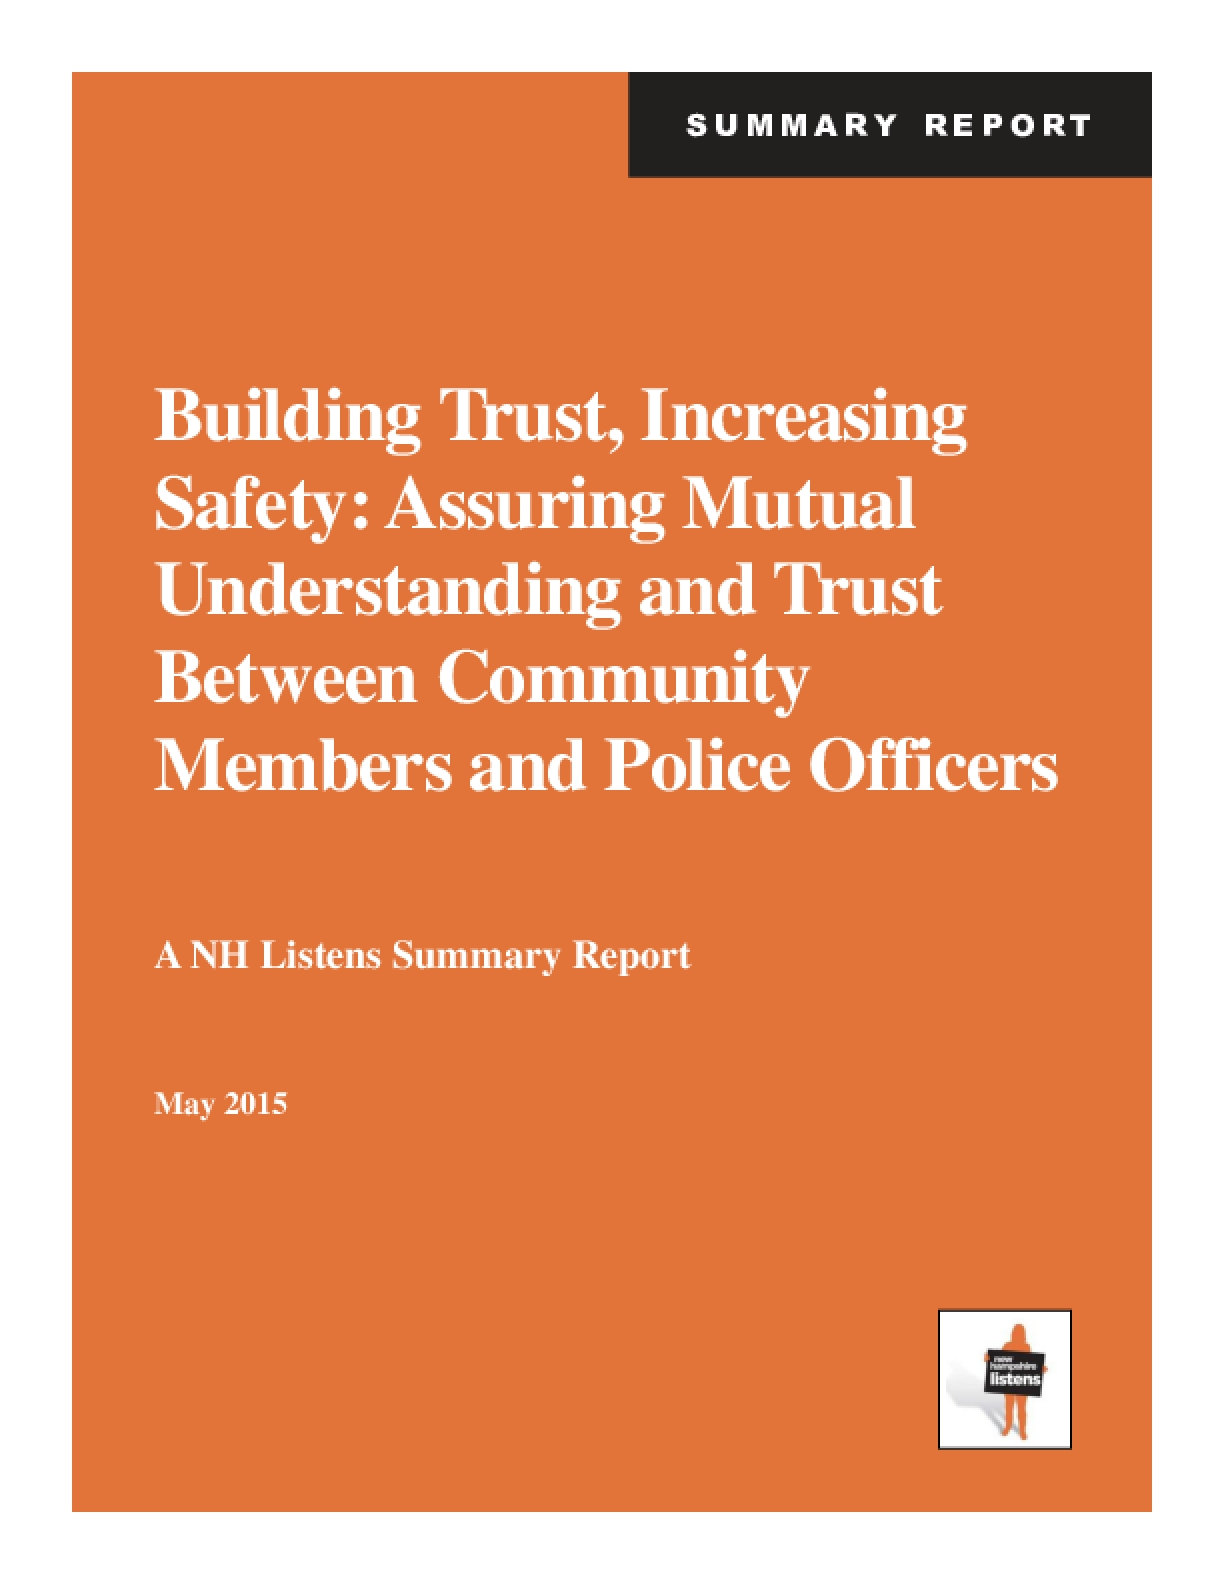 Building Trust, Increasing Safety: Assuring Mutual Understanding and Trust Between Community Members and Police Officers